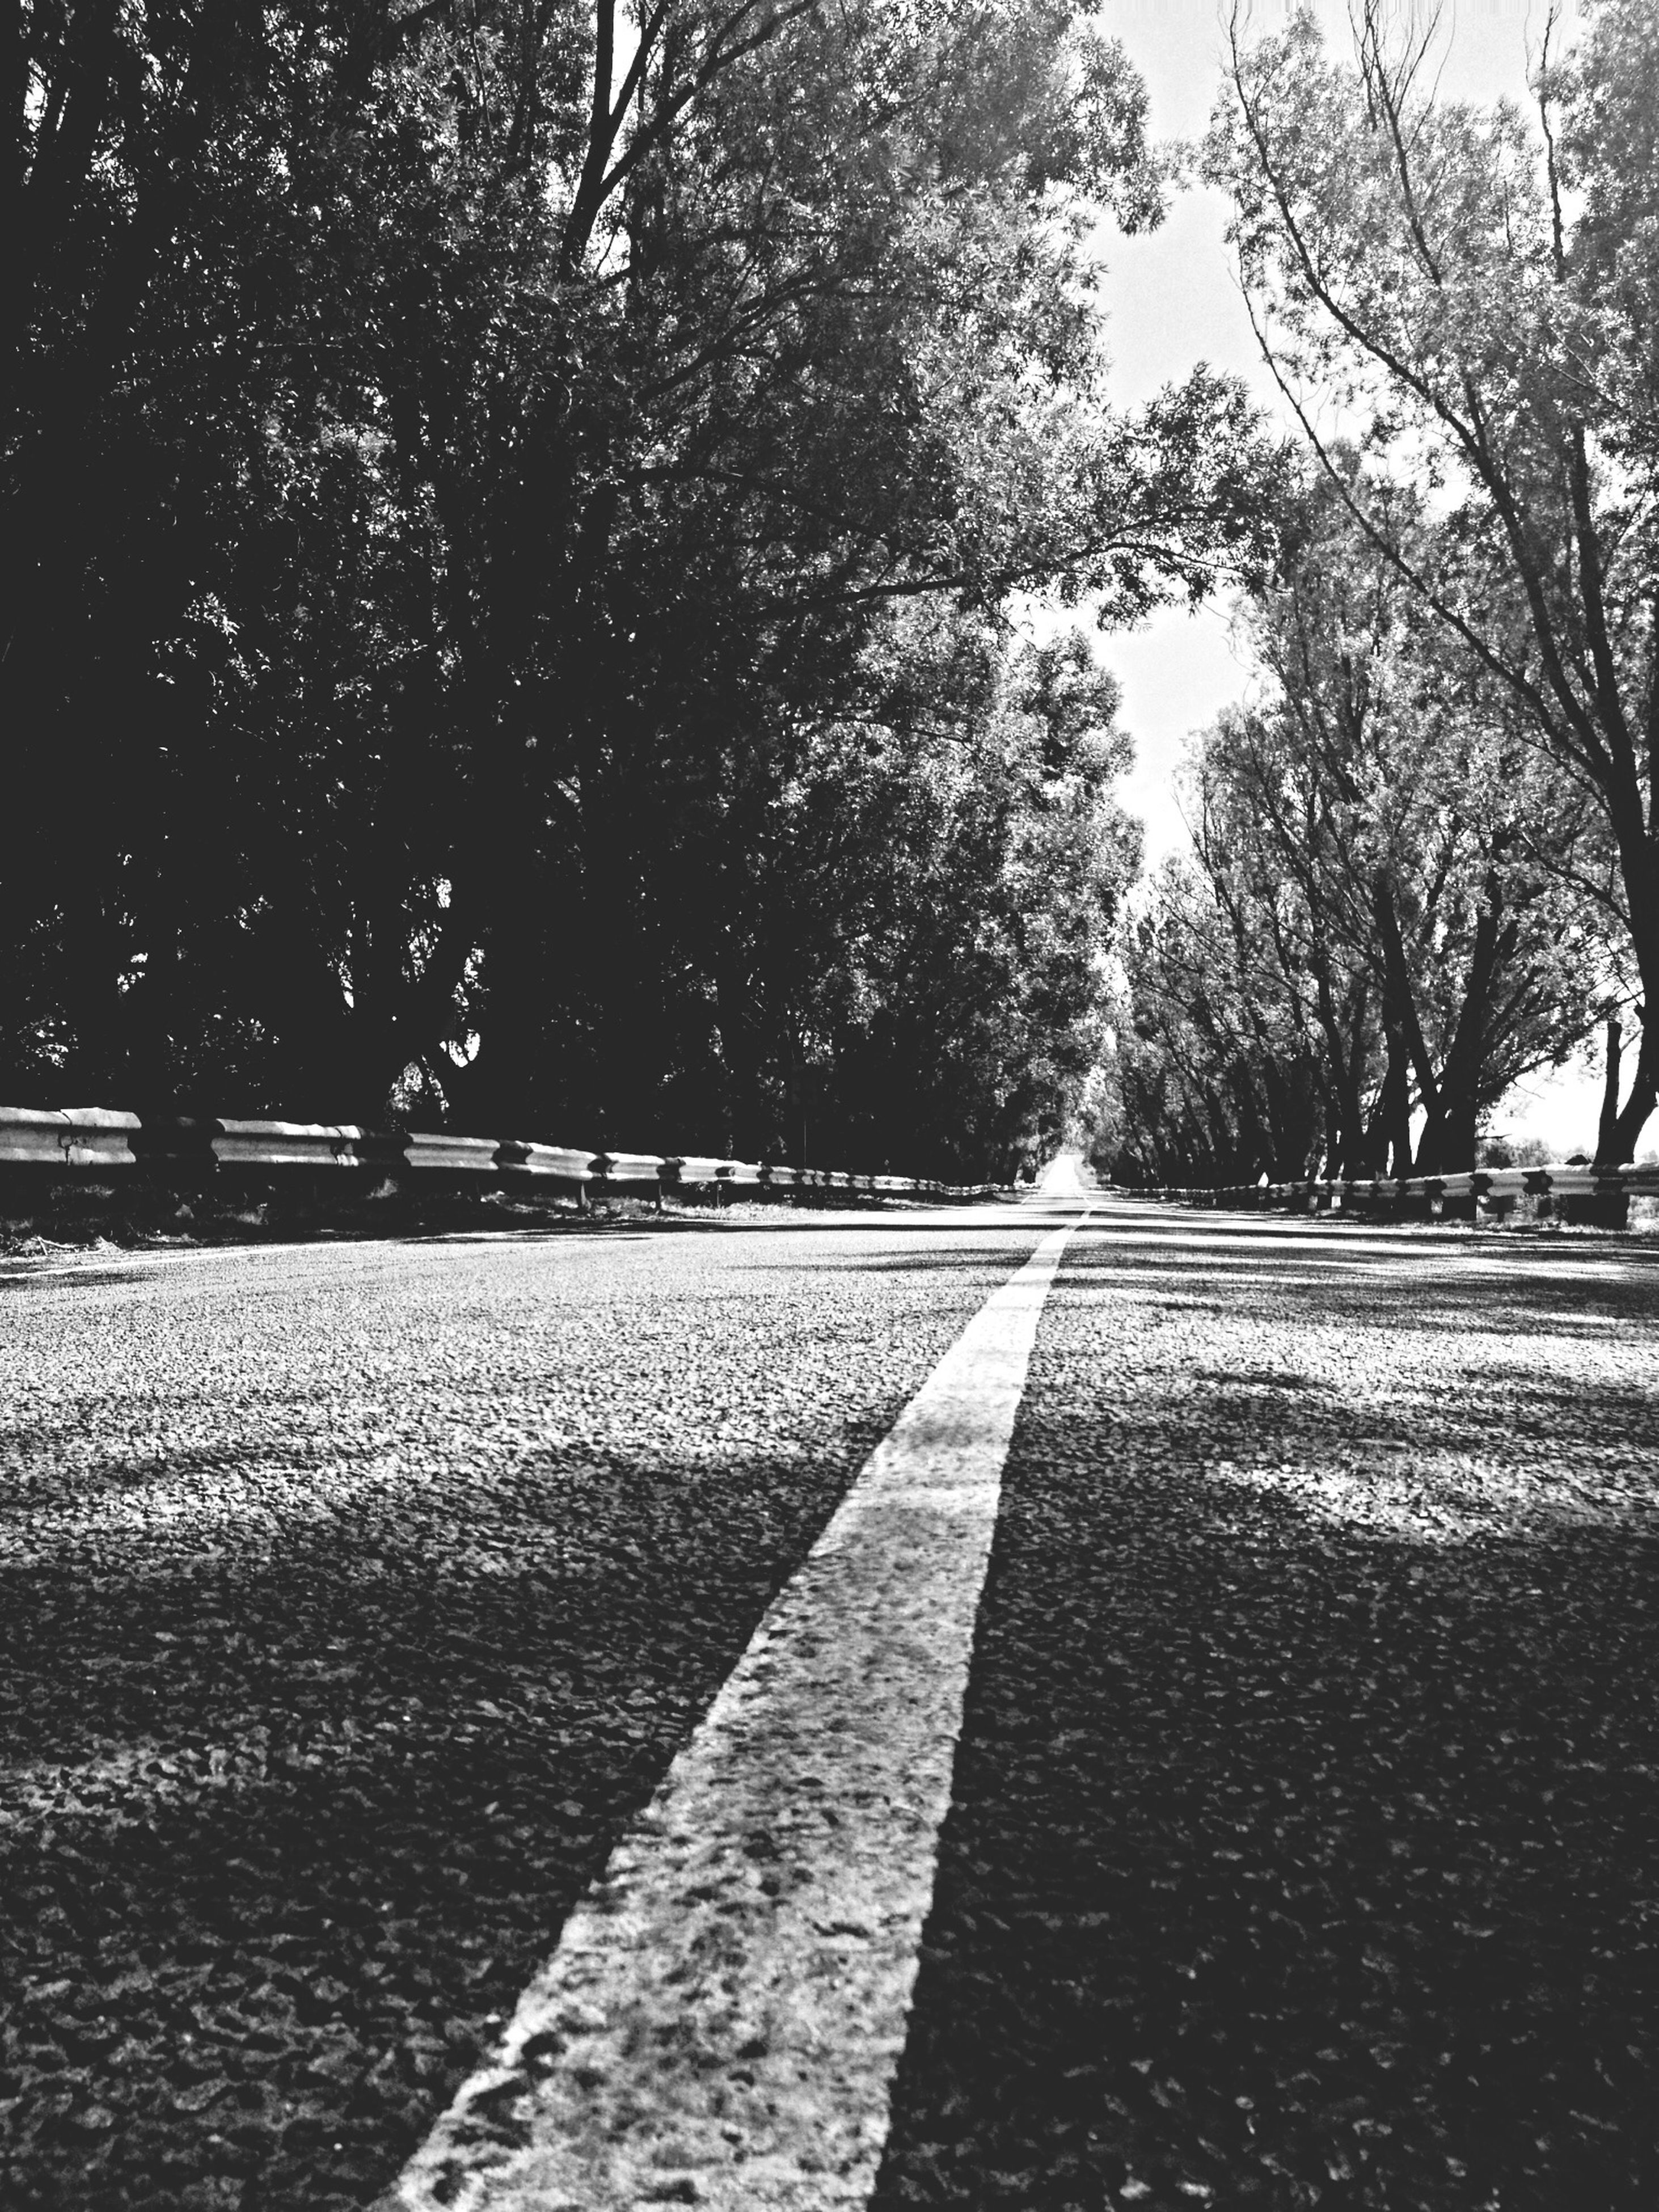 tree, the way forward, diminishing perspective, vanishing point, transportation, road, long, empty, tranquility, nature, road marking, empty road, footpath, treelined, no people, outdoors, day, park - man made space, growth, surface level